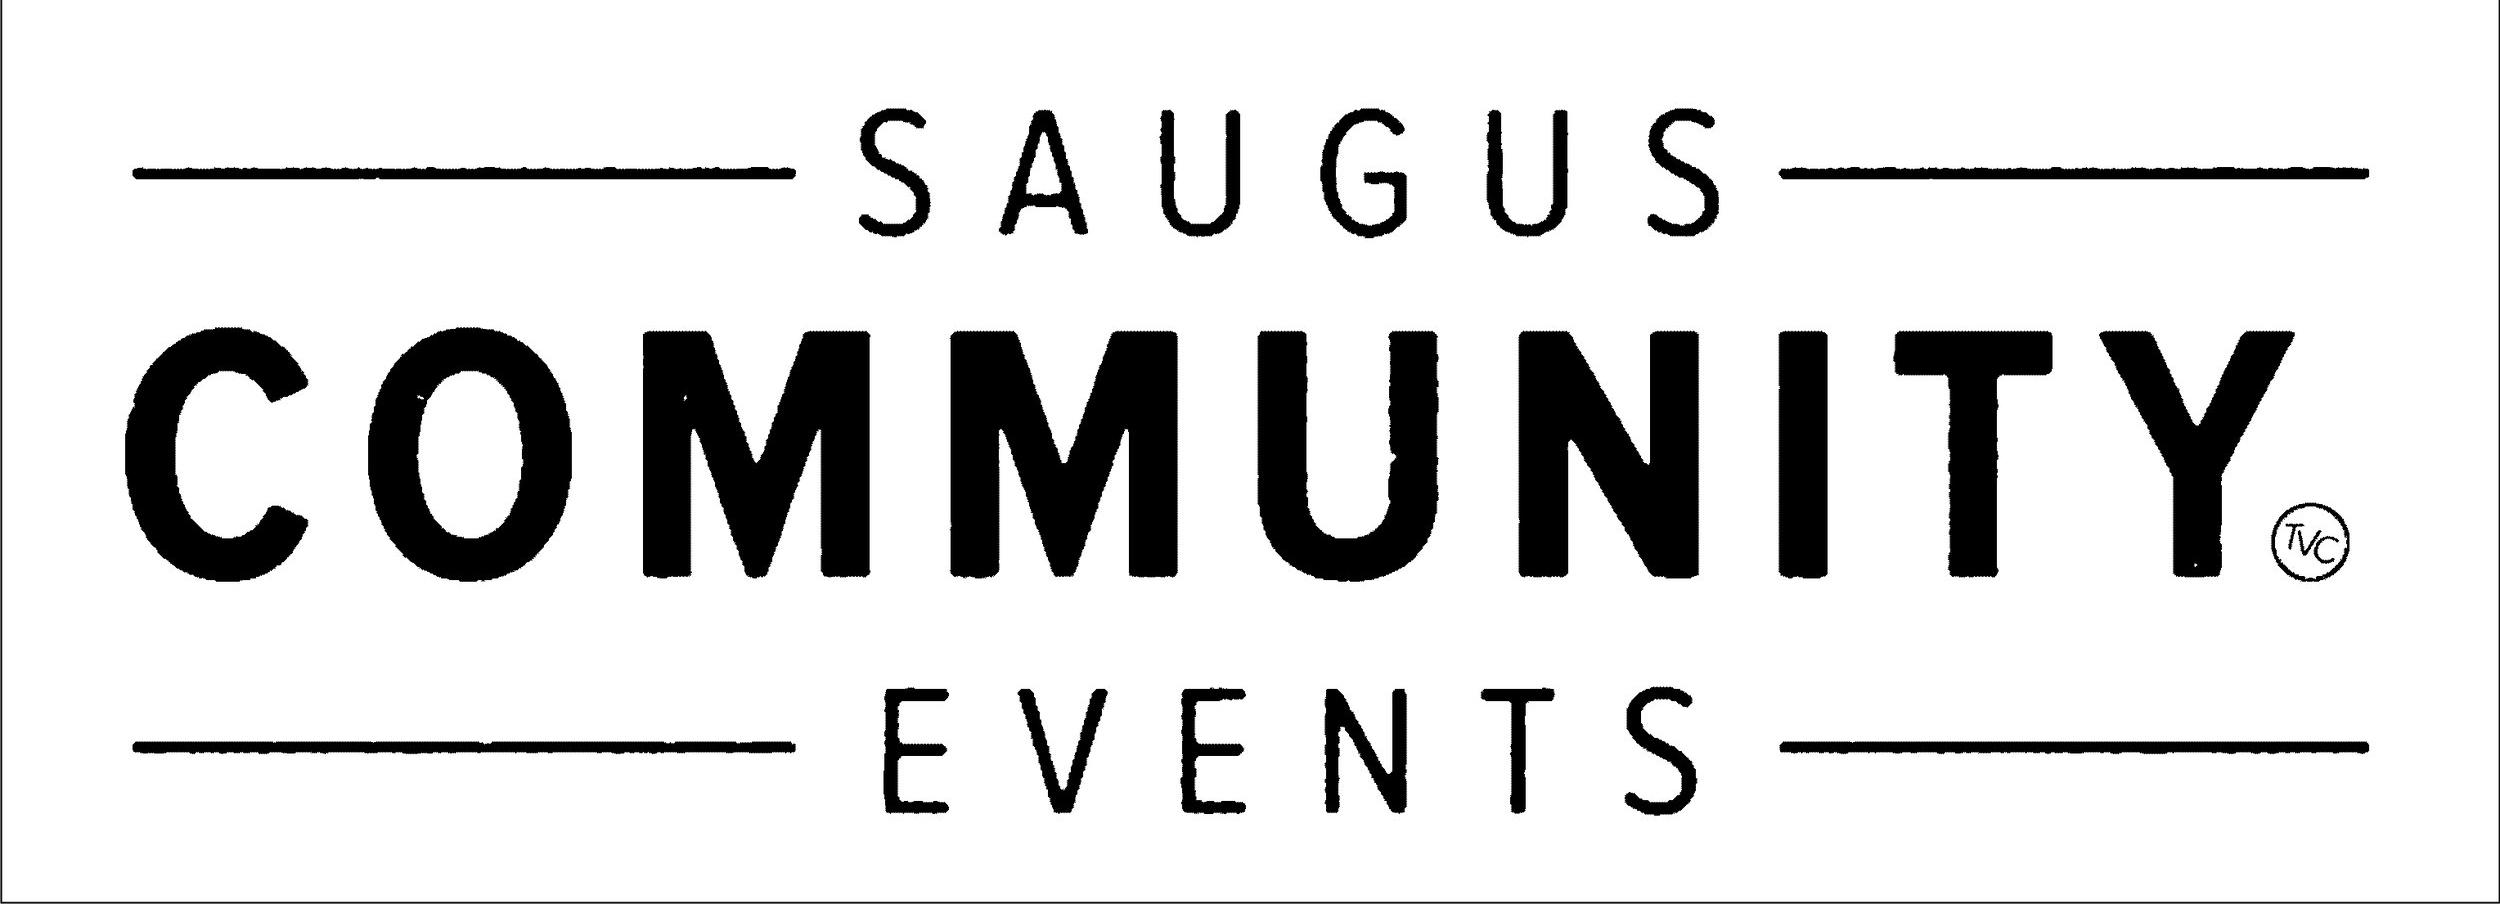 Saugus Community Events 2016.JPG